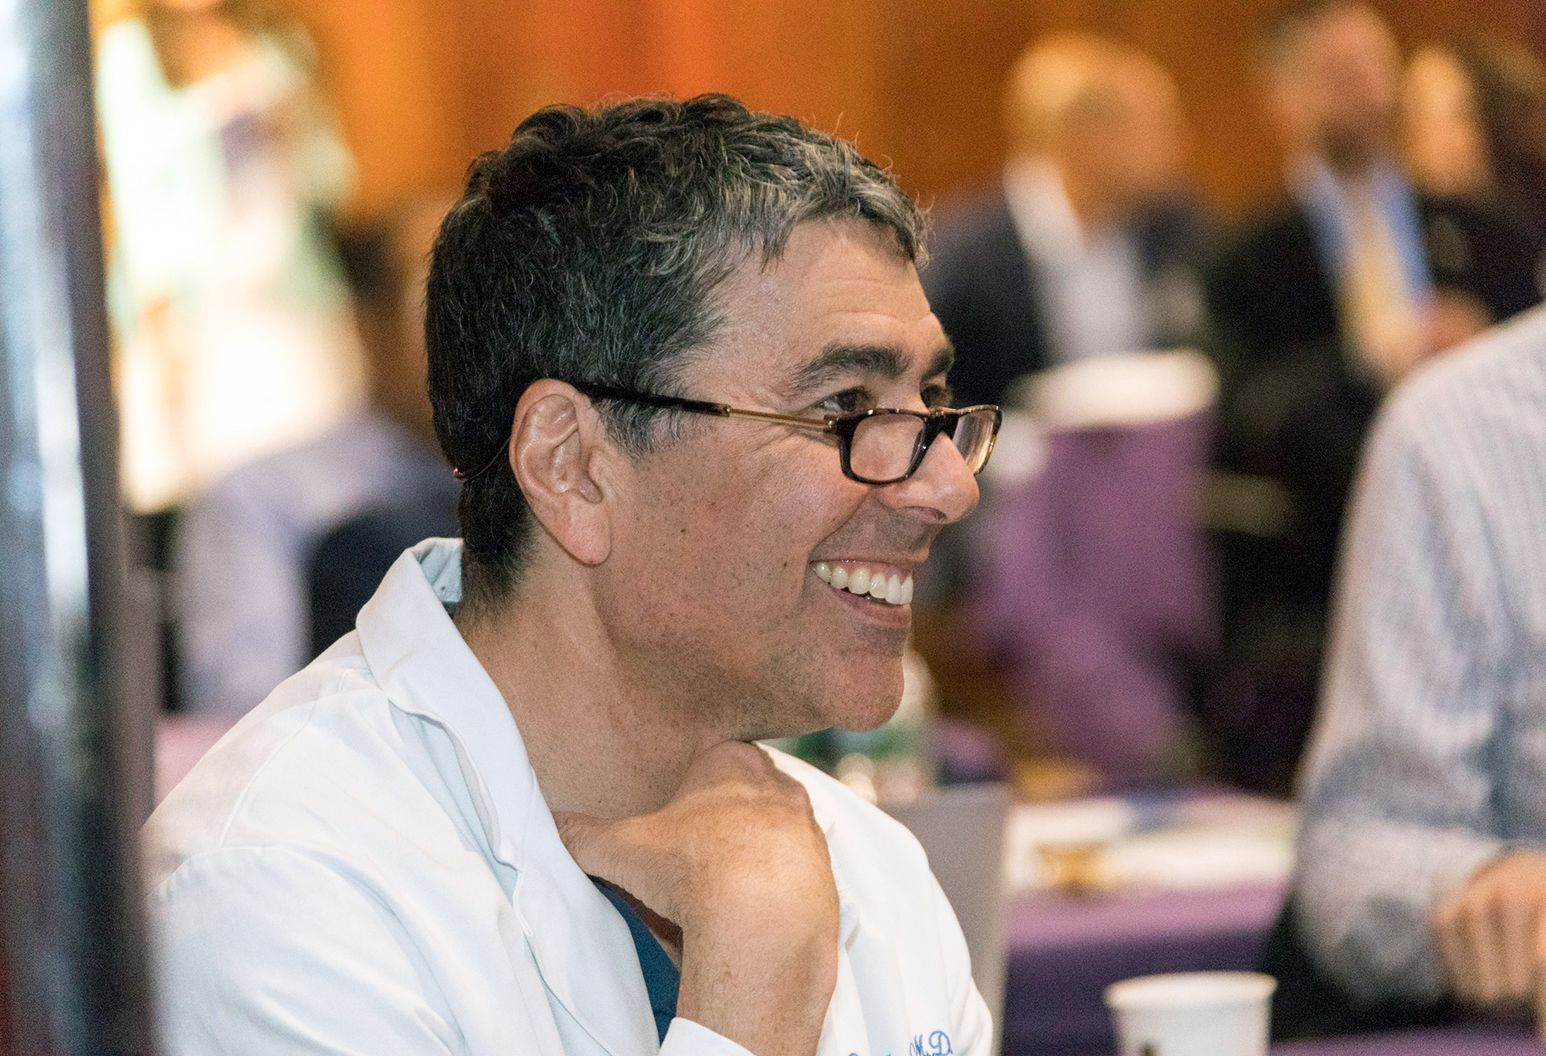 Close up photograph of a middle aged male doctor smiling while he is watching a presentation